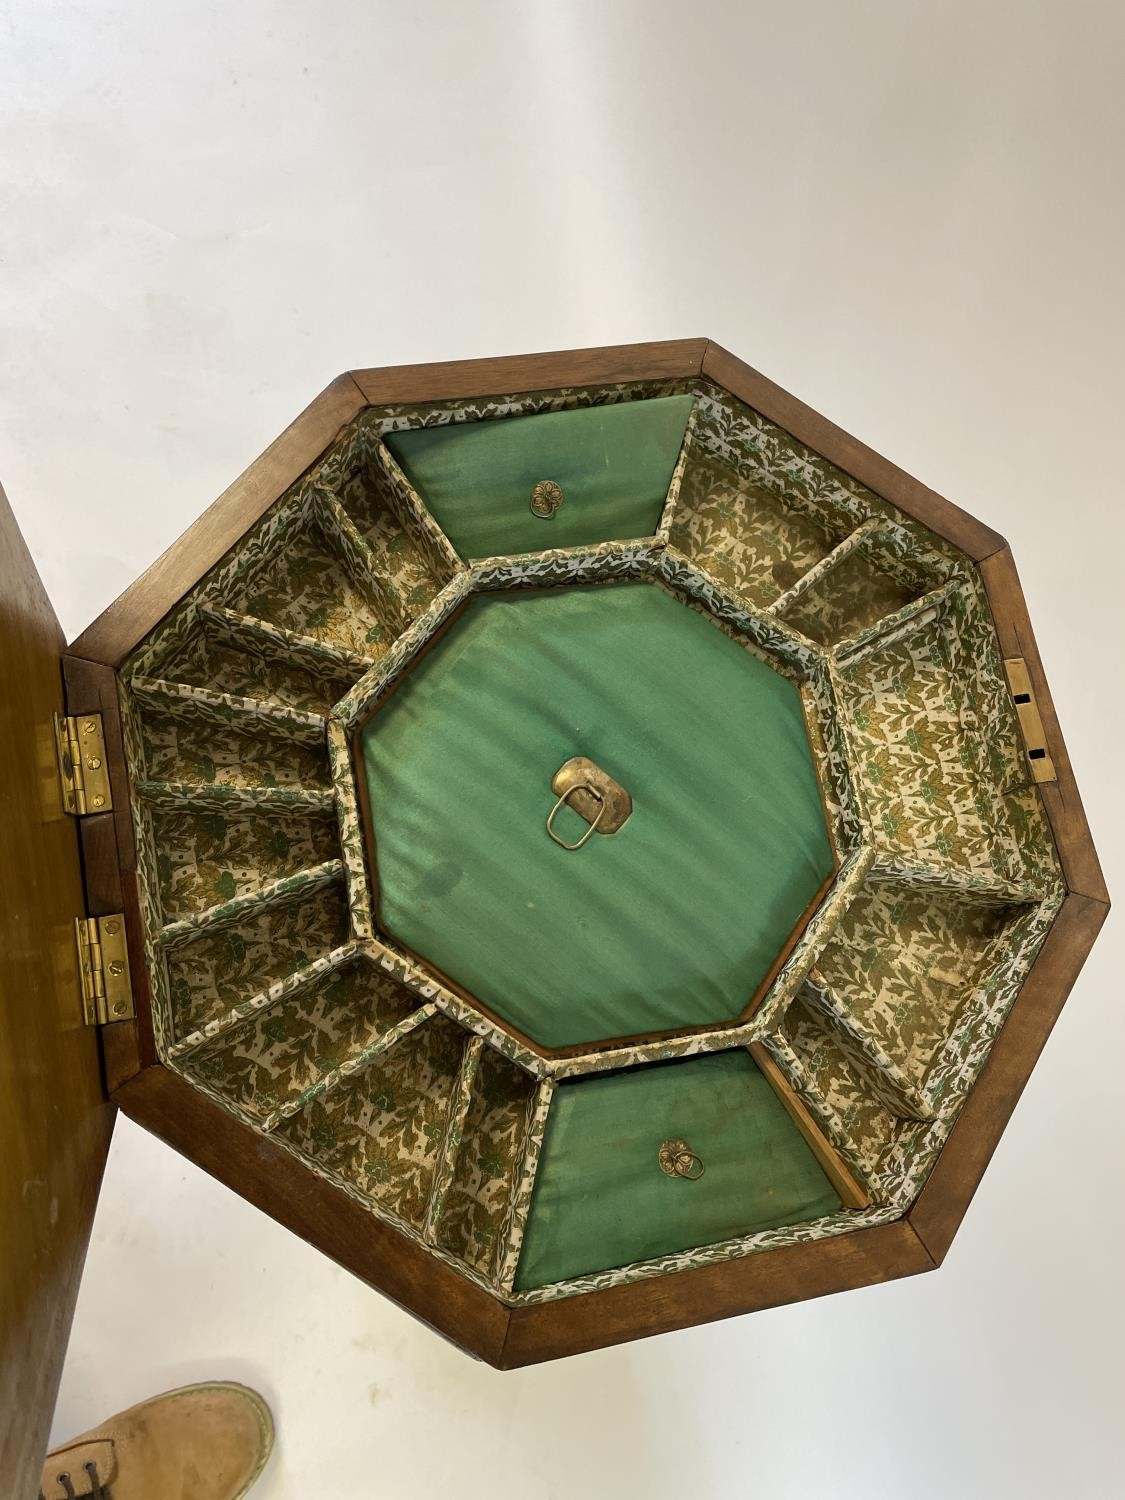 A 19th century walnut work table, the top inlaid for chess, 44 cm wide - Image 3 of 3